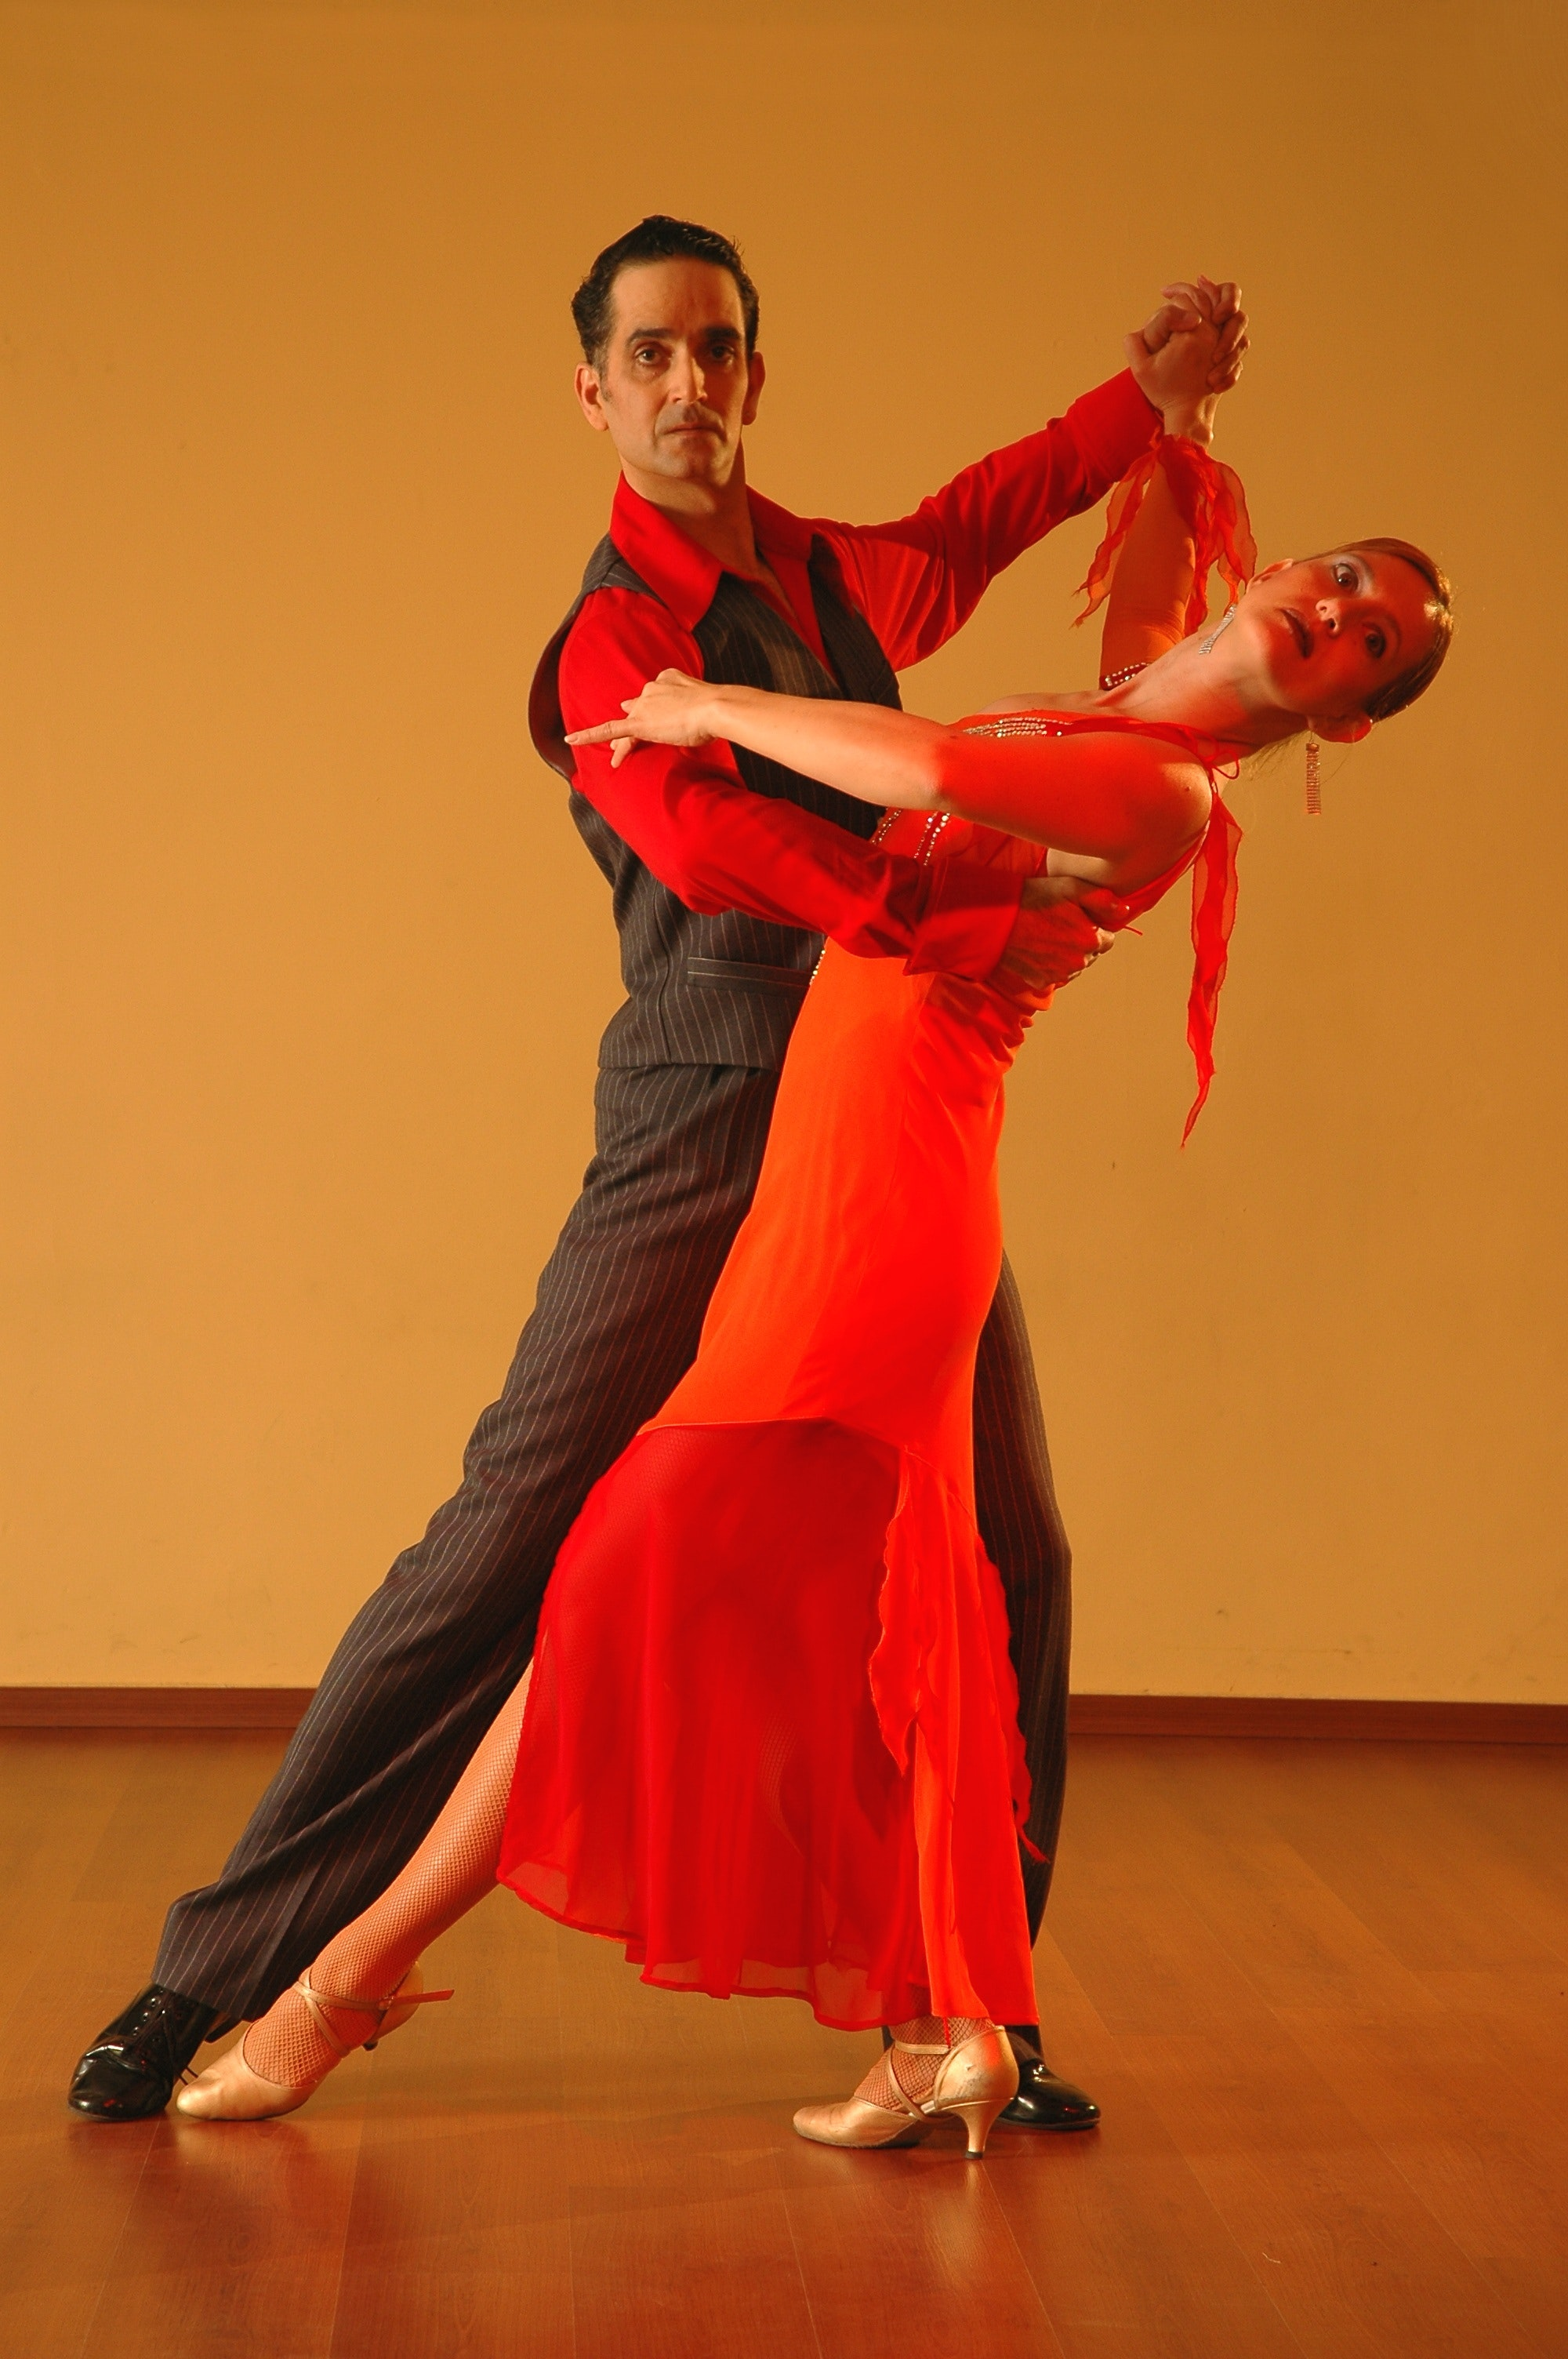 Free Stock Photo Of Ballroom Ballroom Dancing Couple Dancing